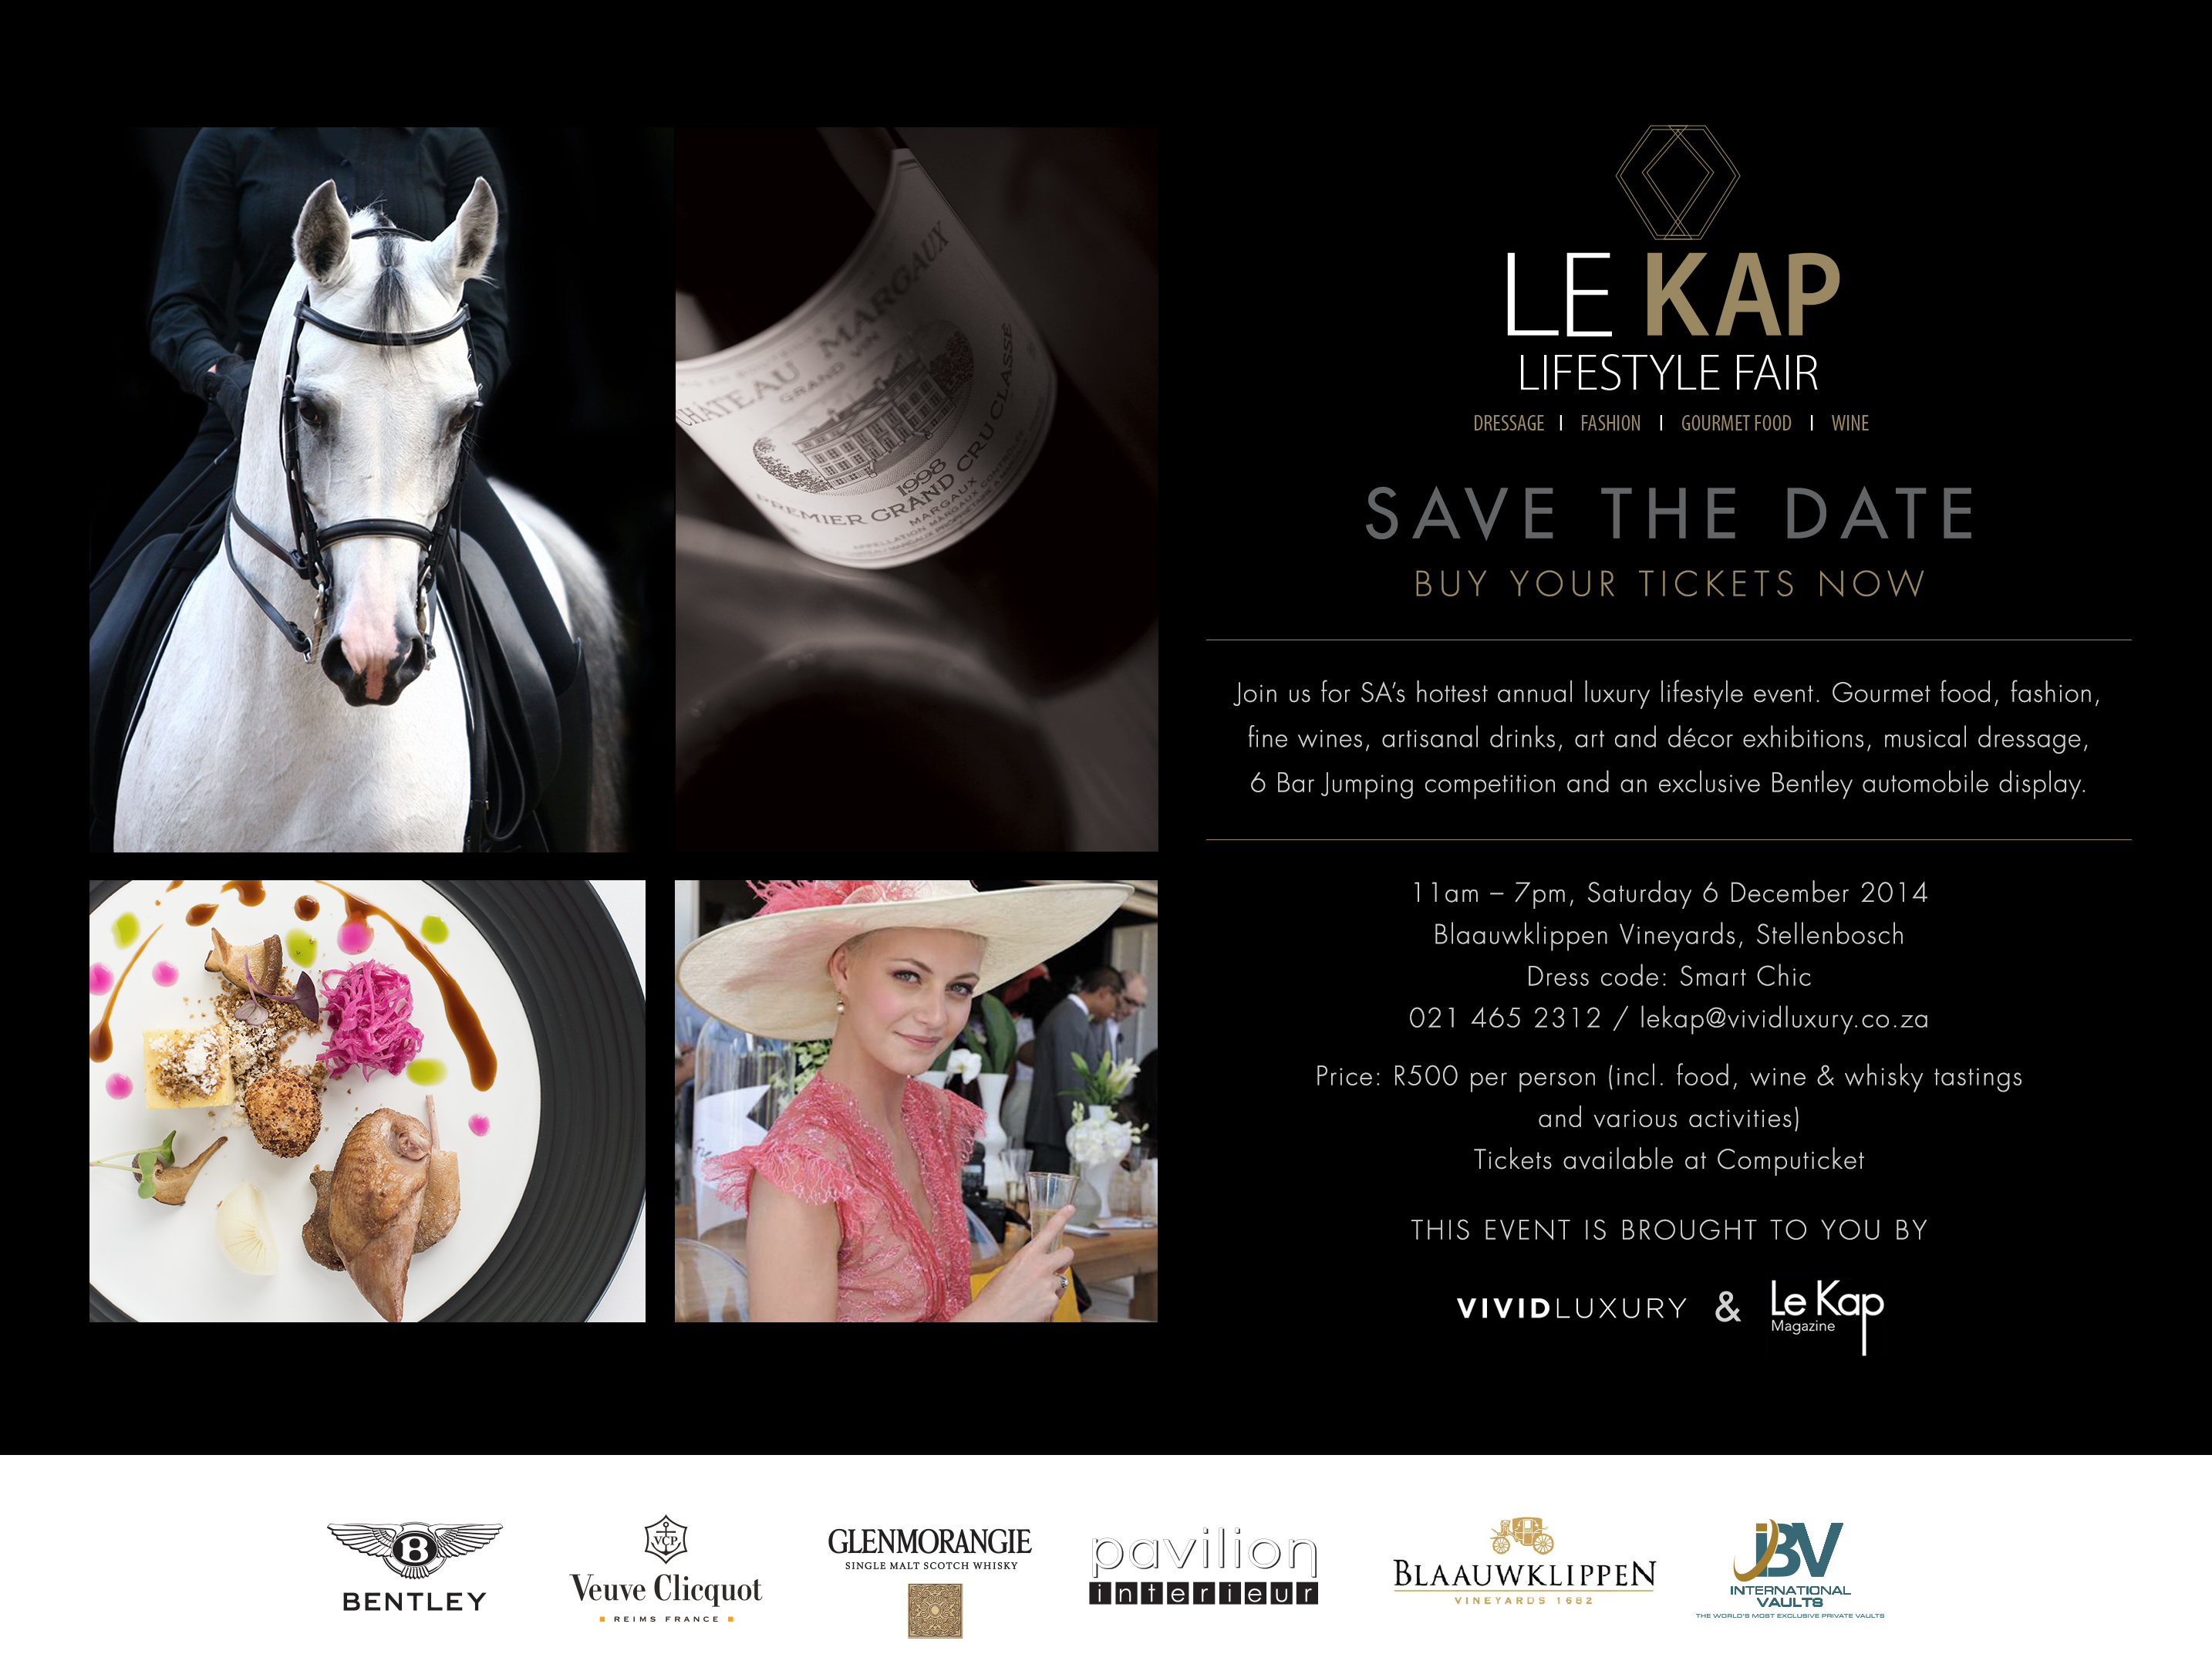 Le Kap Lifestyle Fair